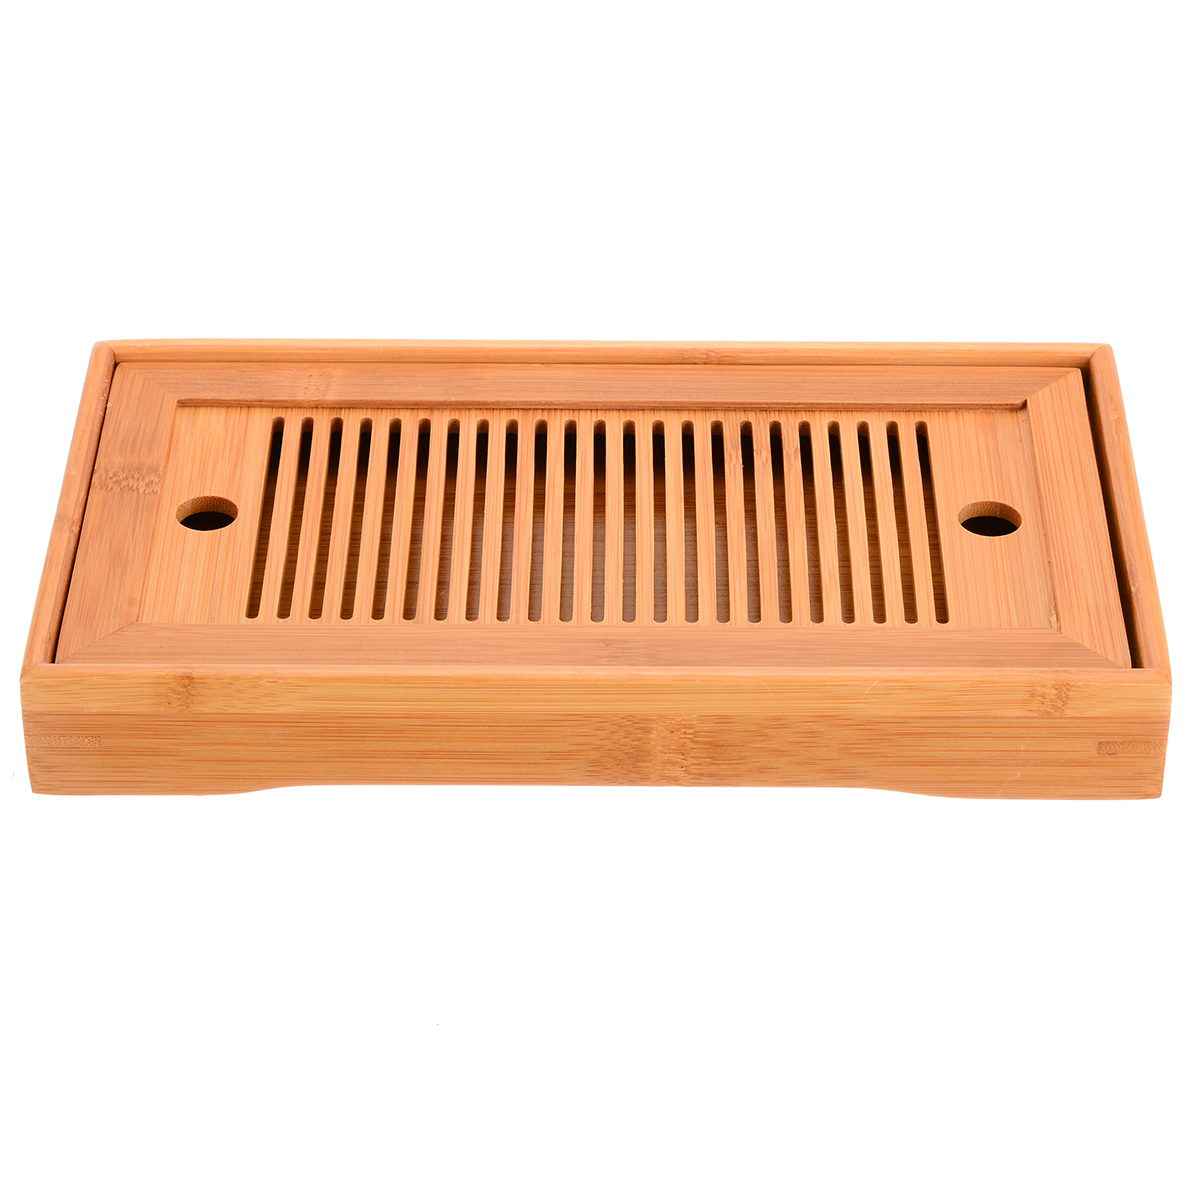 25*14*3.5cm Rectangle Chinese Gongfu Tea High Quality Bamboo Tea Tray Serving Food Coffee Tea Cutlery Tray